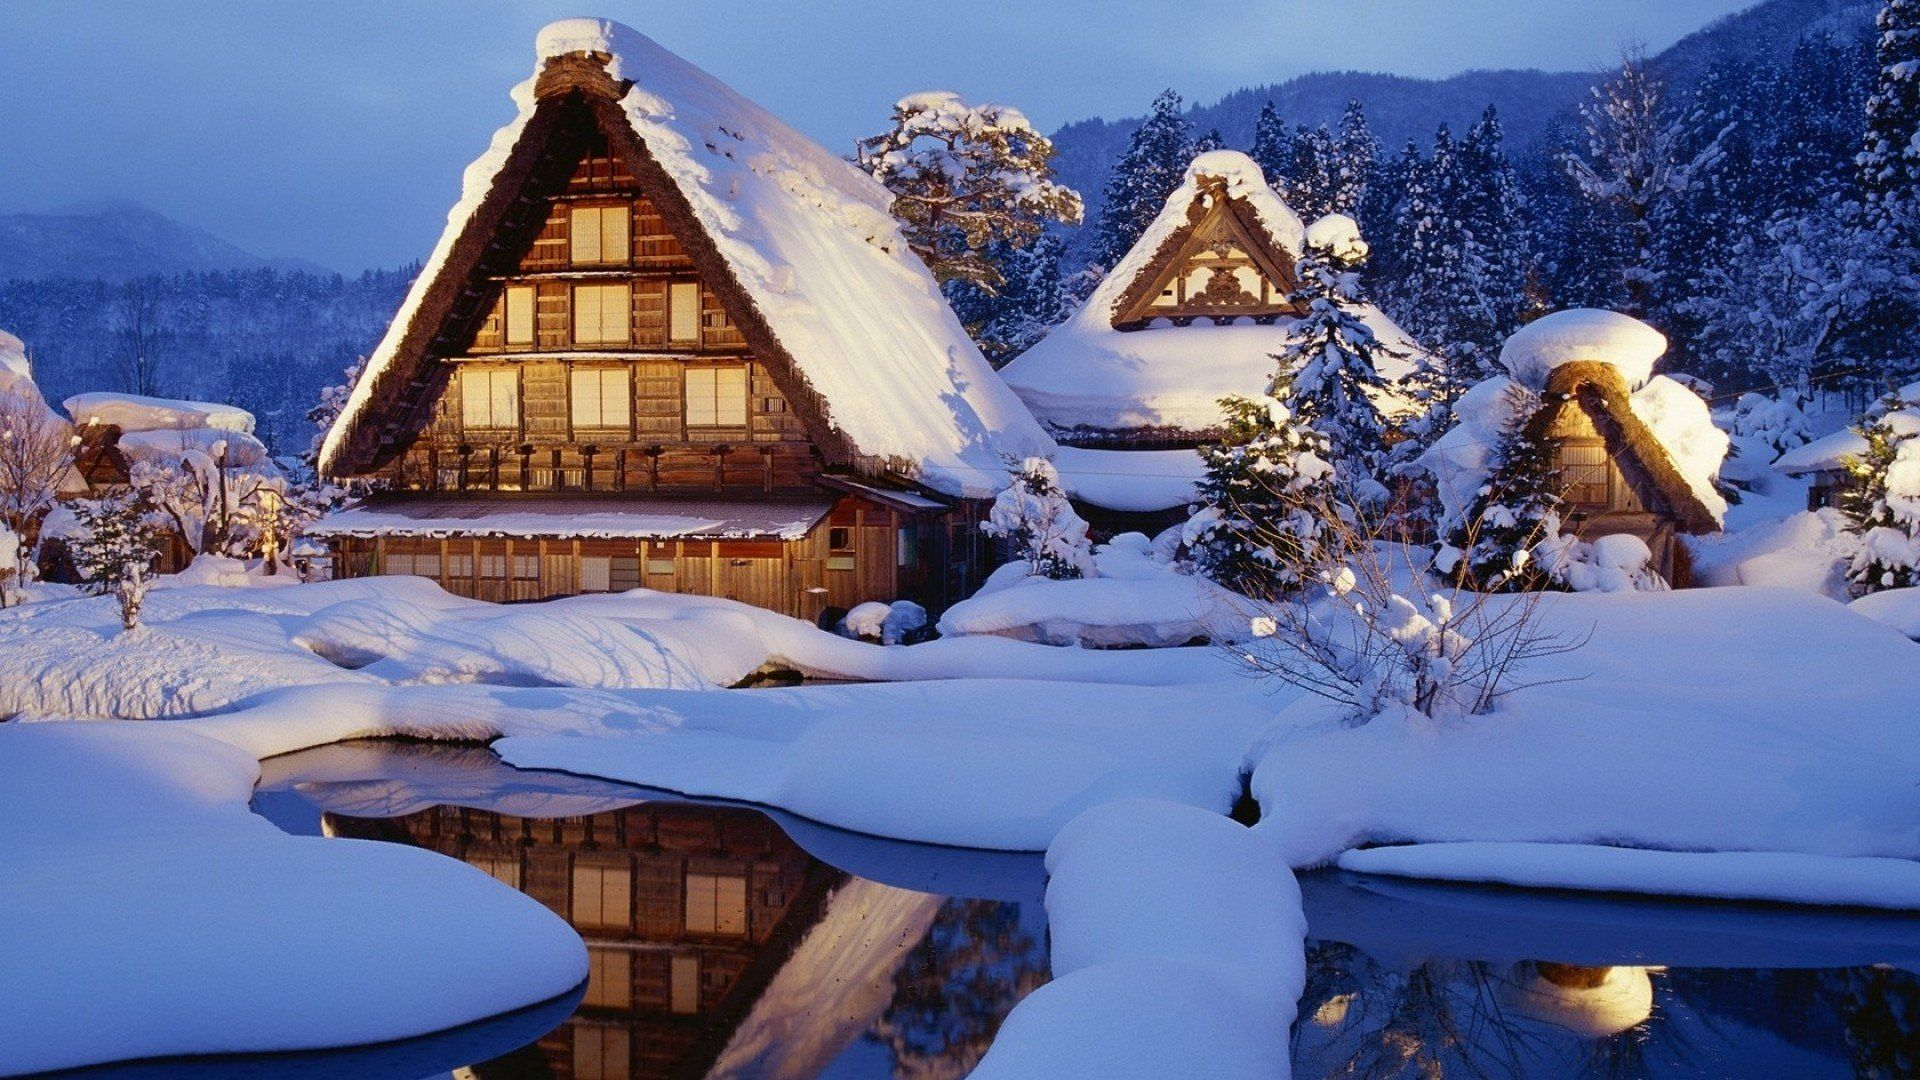 japanese winter wallpapers top free japanese winter. Black Bedroom Furniture Sets. Home Design Ideas